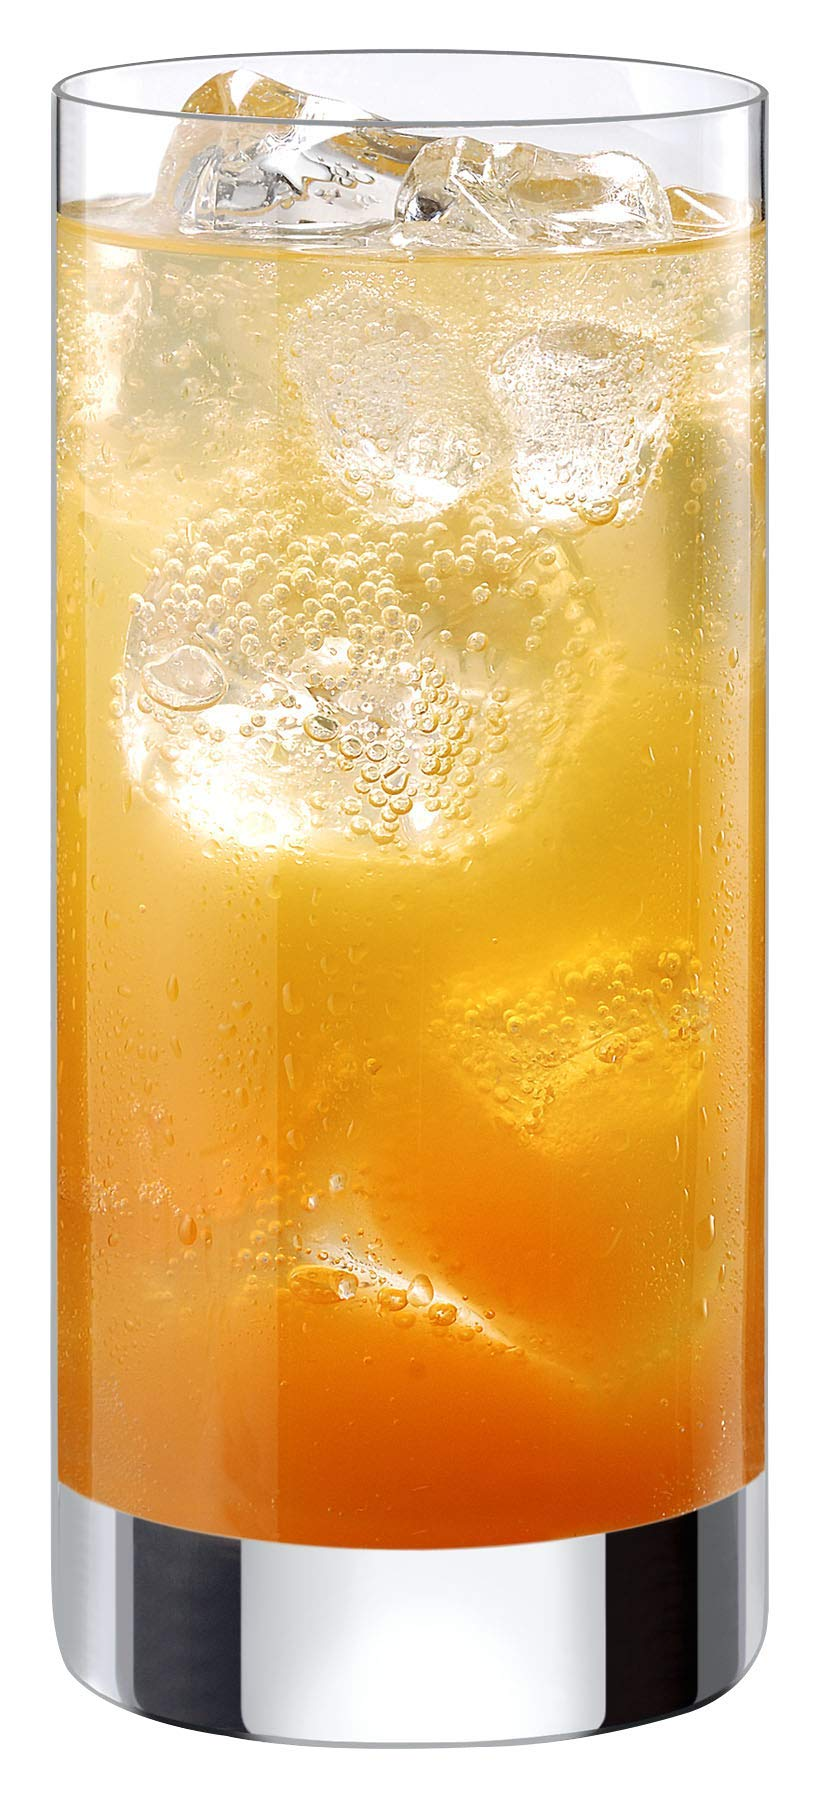 RONA Classic Mixed Drink Glass 11 oz.